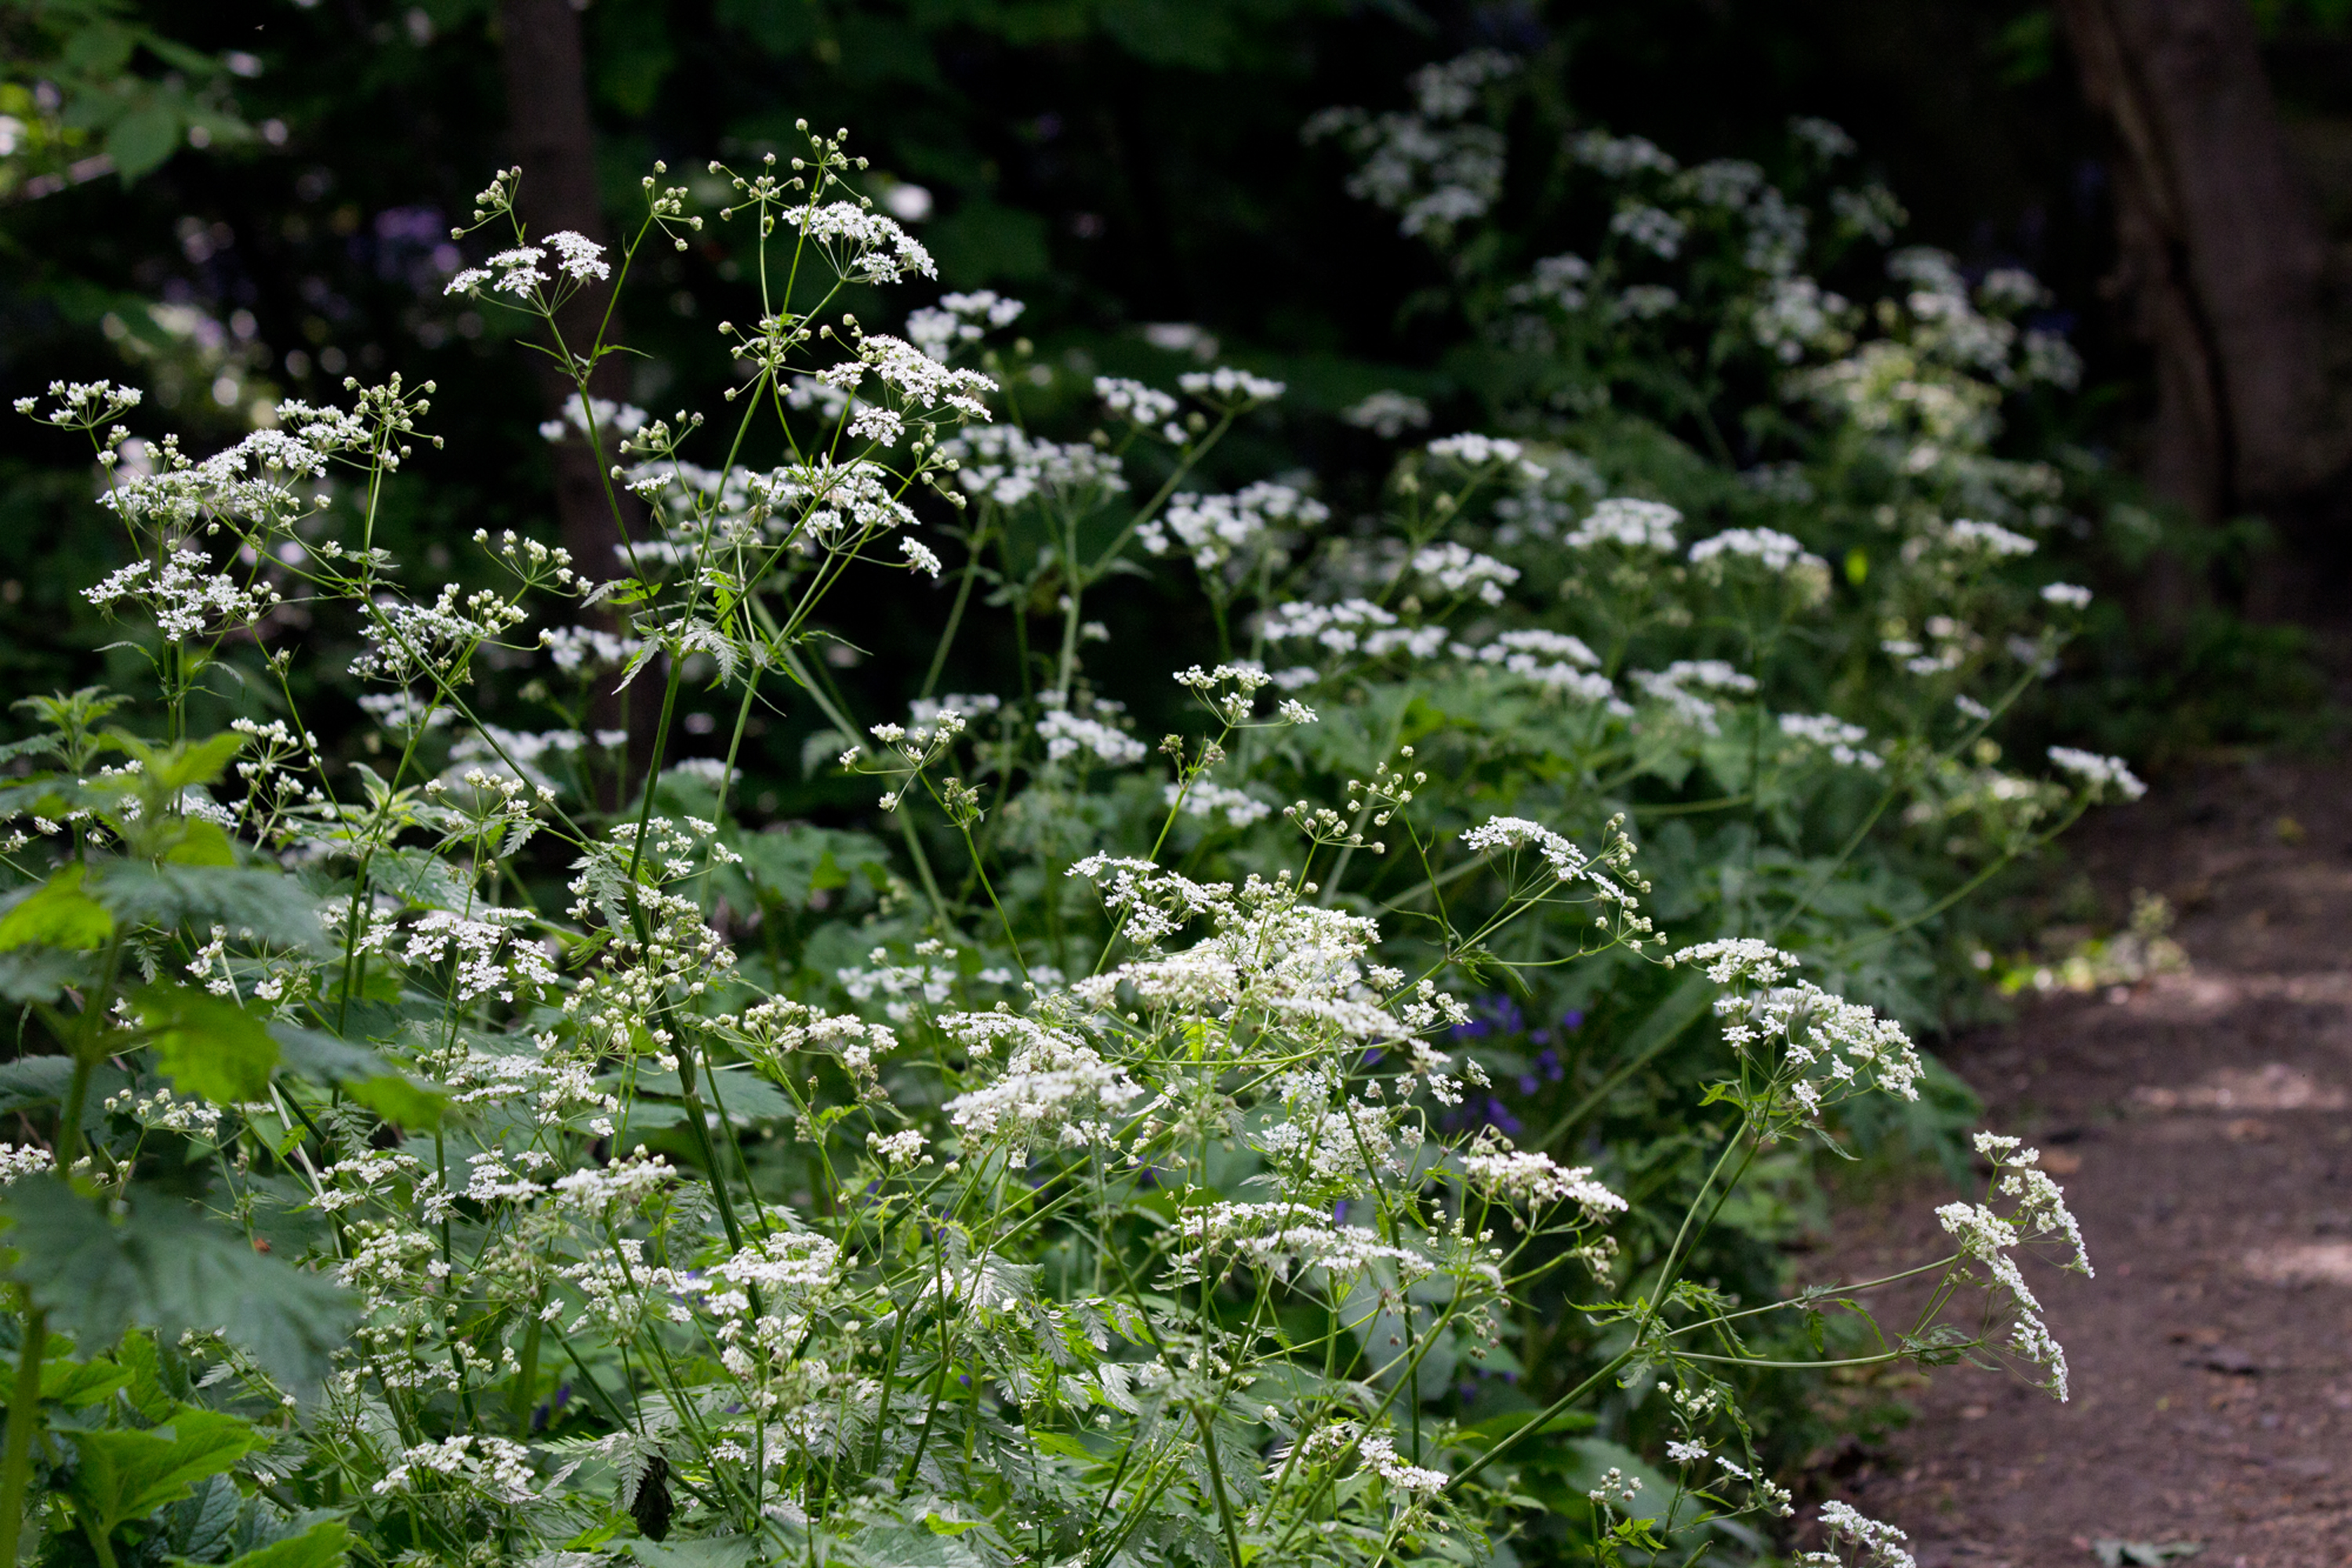 Cow Parsley Hopeward Wood